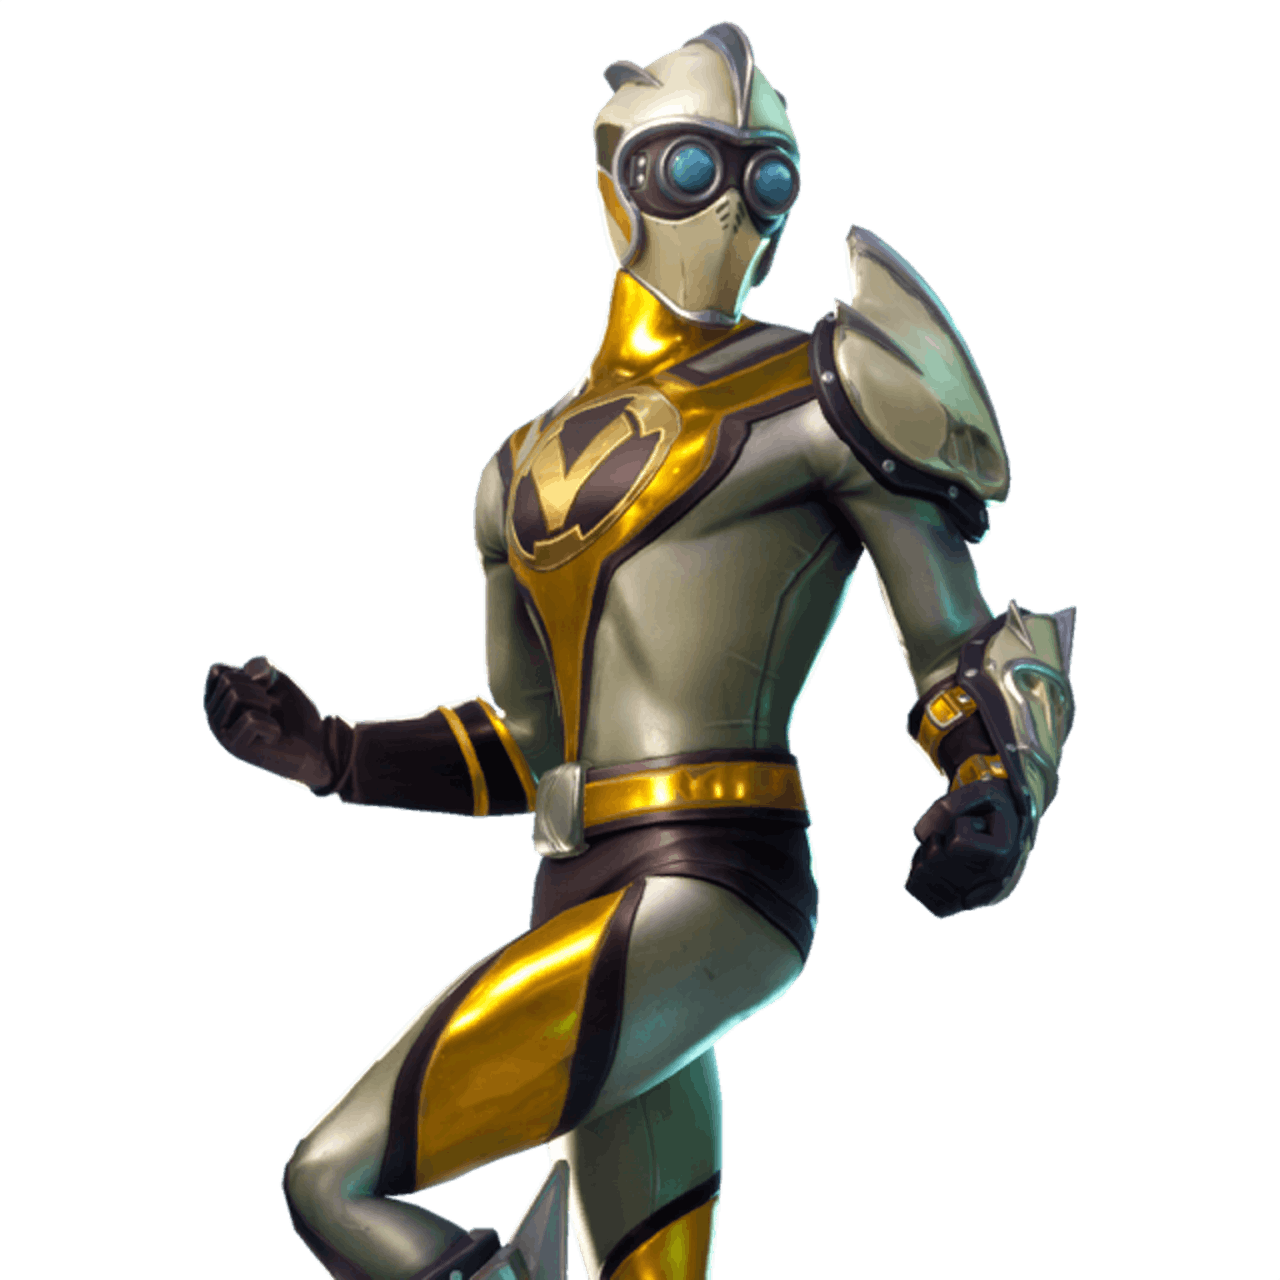 Fortnite': New Leaks Reveal Superhero Skins Are Coming to